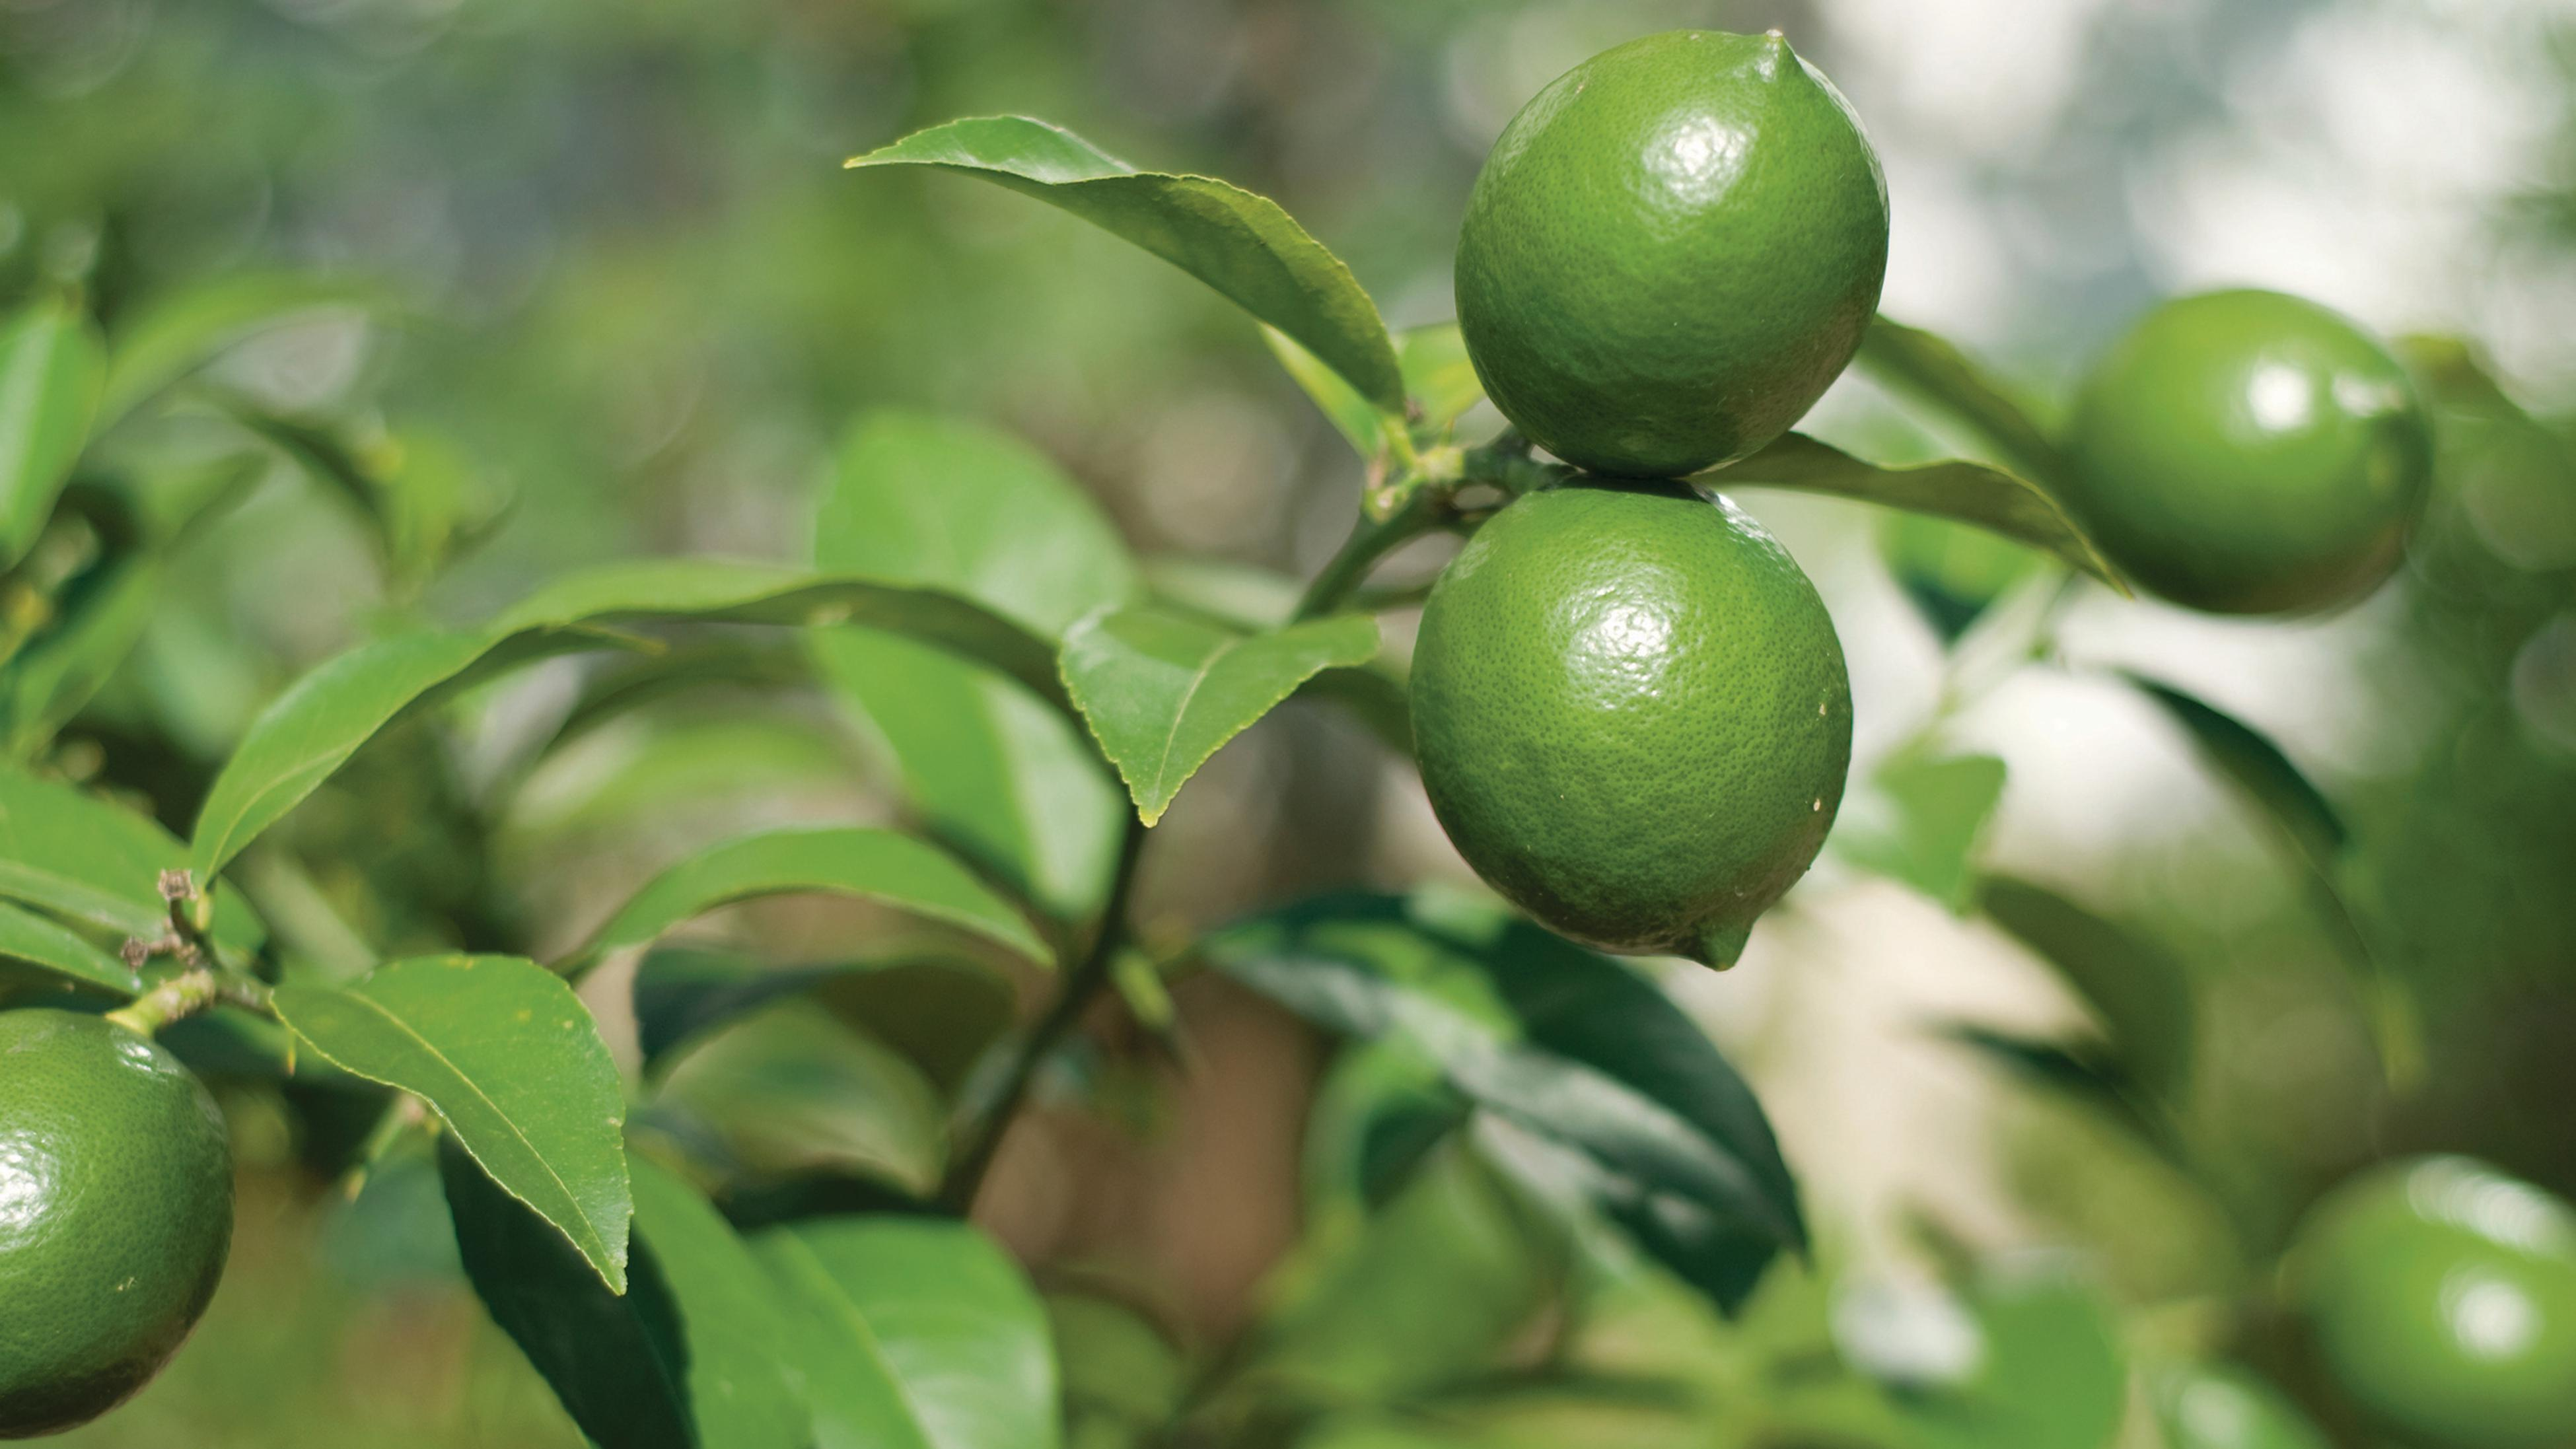 Limes growing on tree.